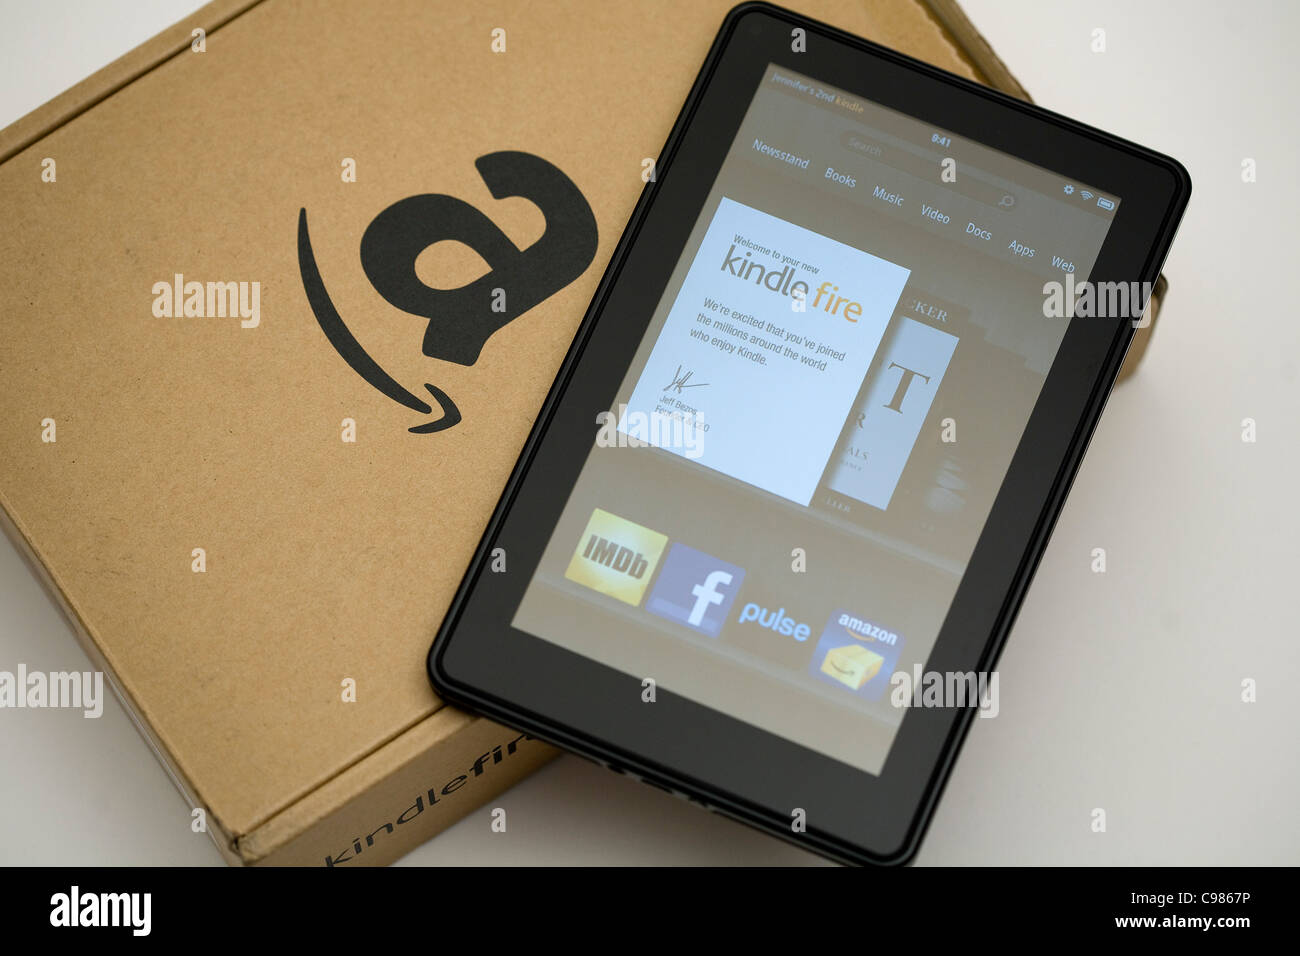 The Amazon.com Kindle Fire tablet computer.  - Stock Image